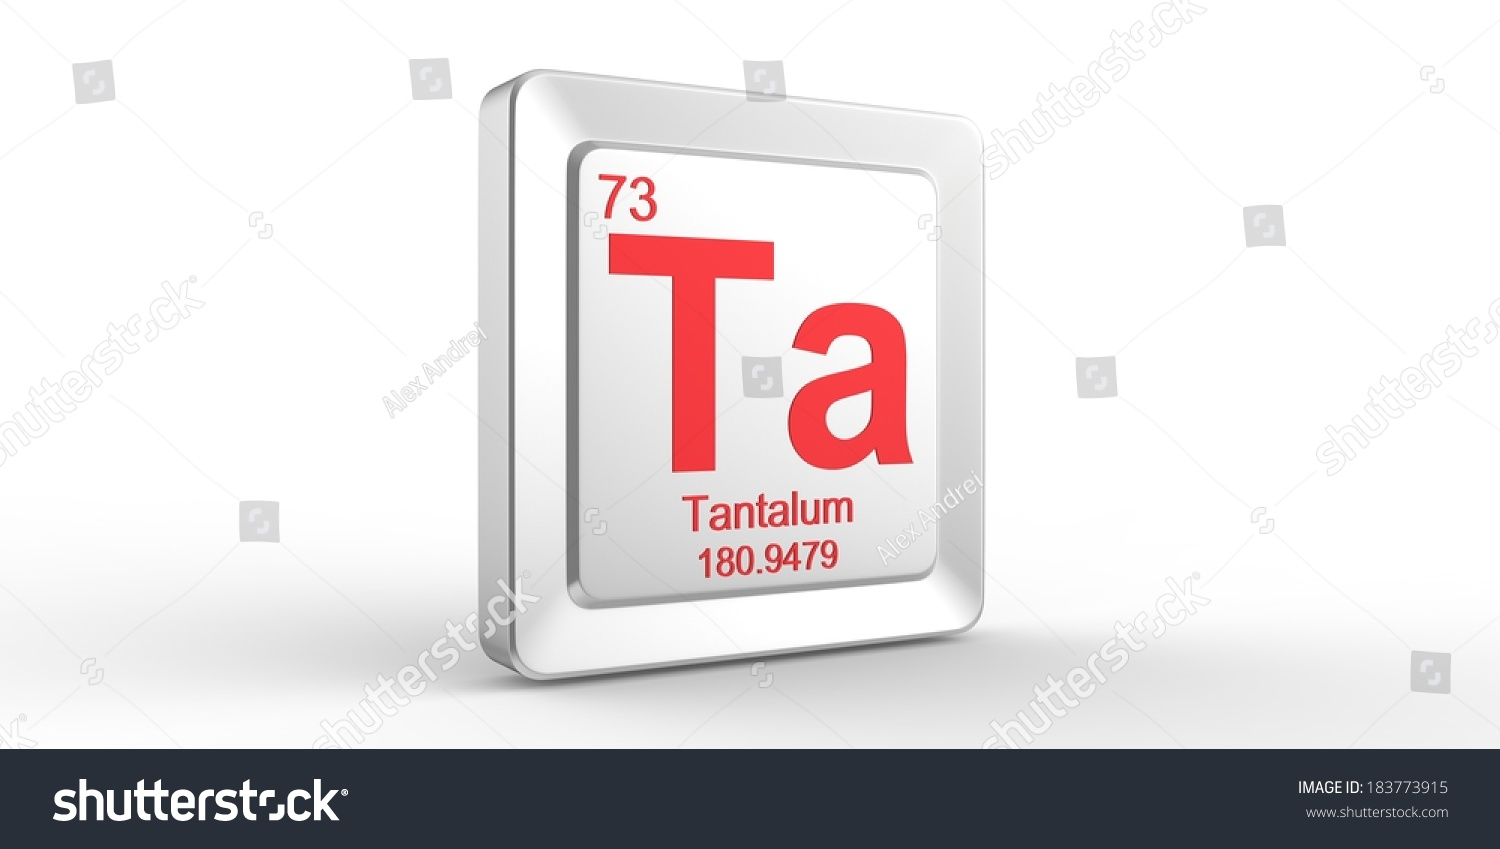 Ta Symbol 73 Material Tantalum Chemical Stock Illustration 183773915